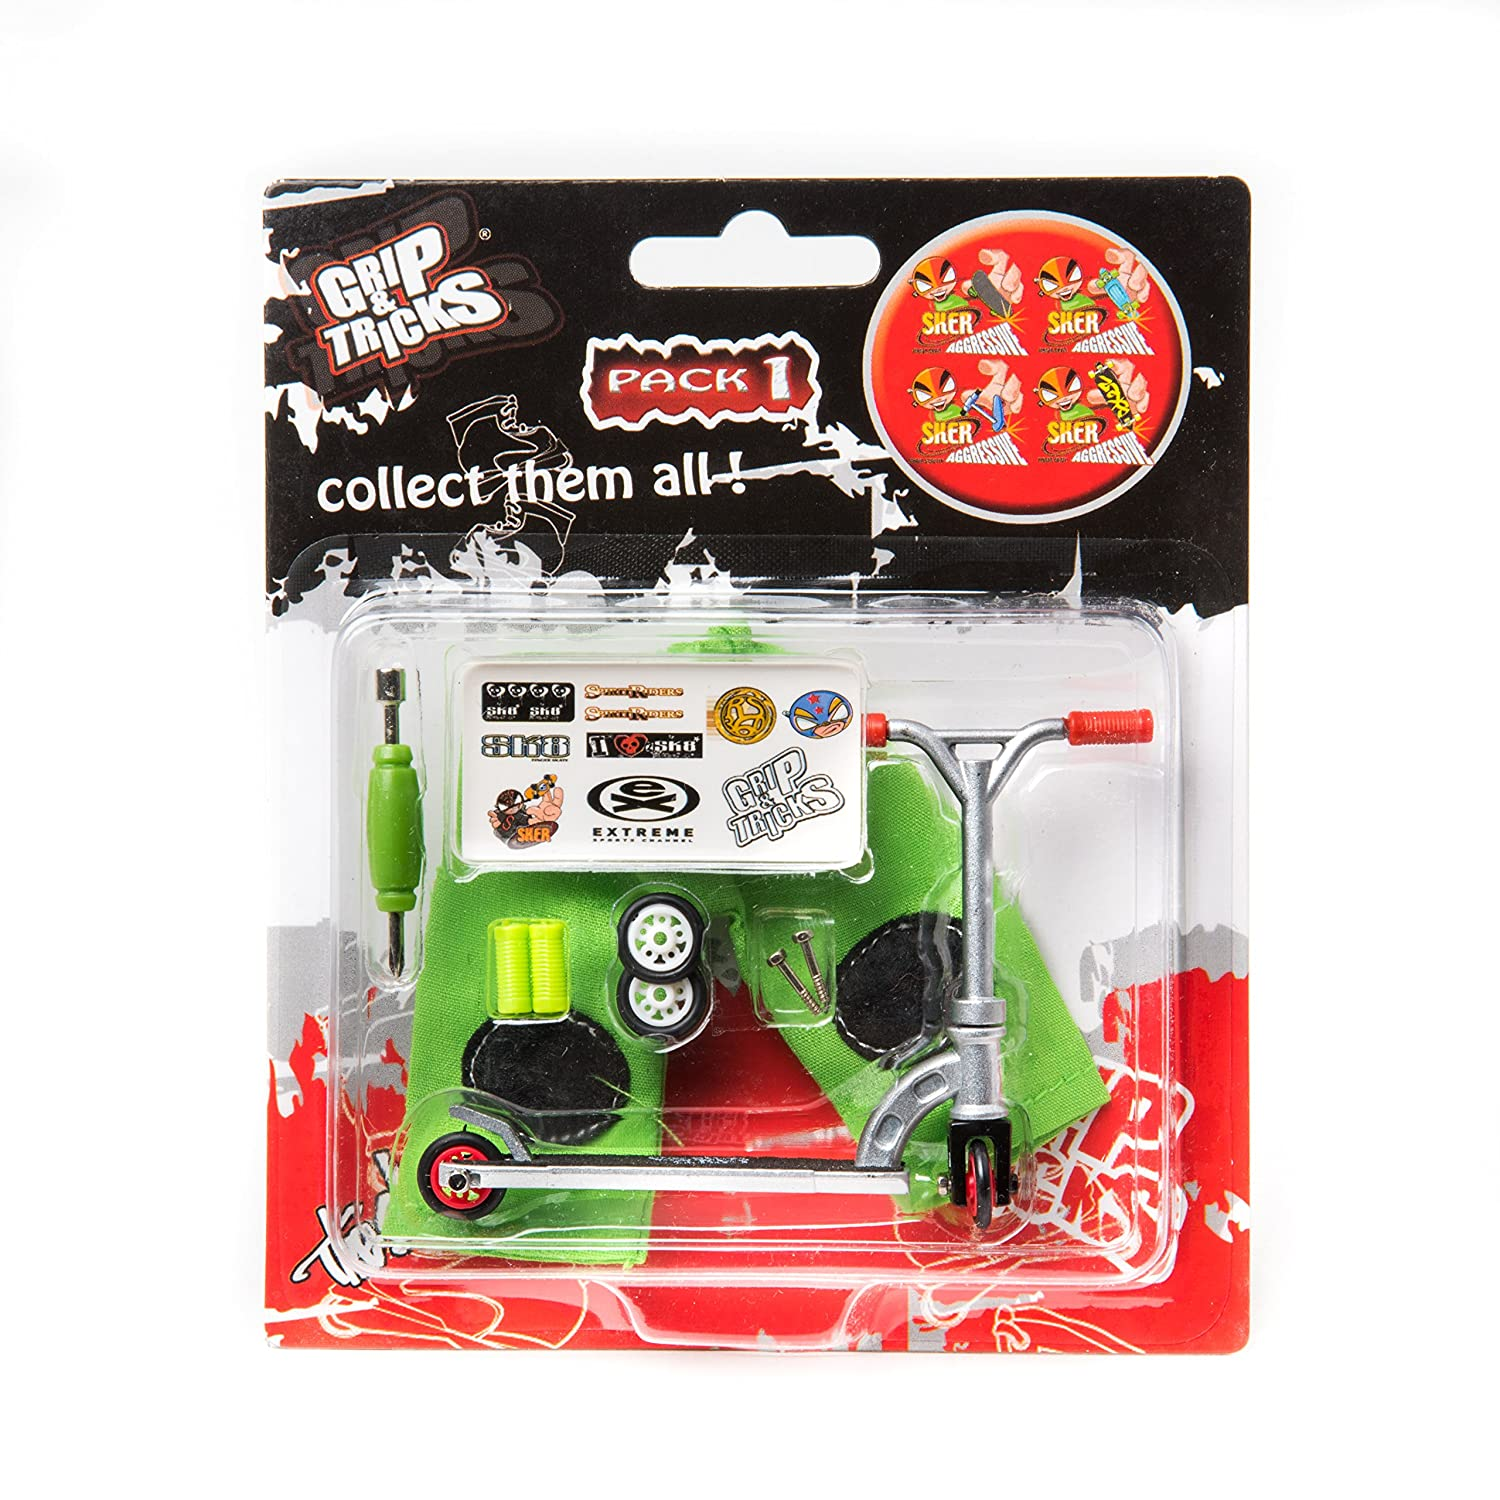 Scooter M7 Grip and Tricks Finger Scooter Skate Pack1 Silver Red